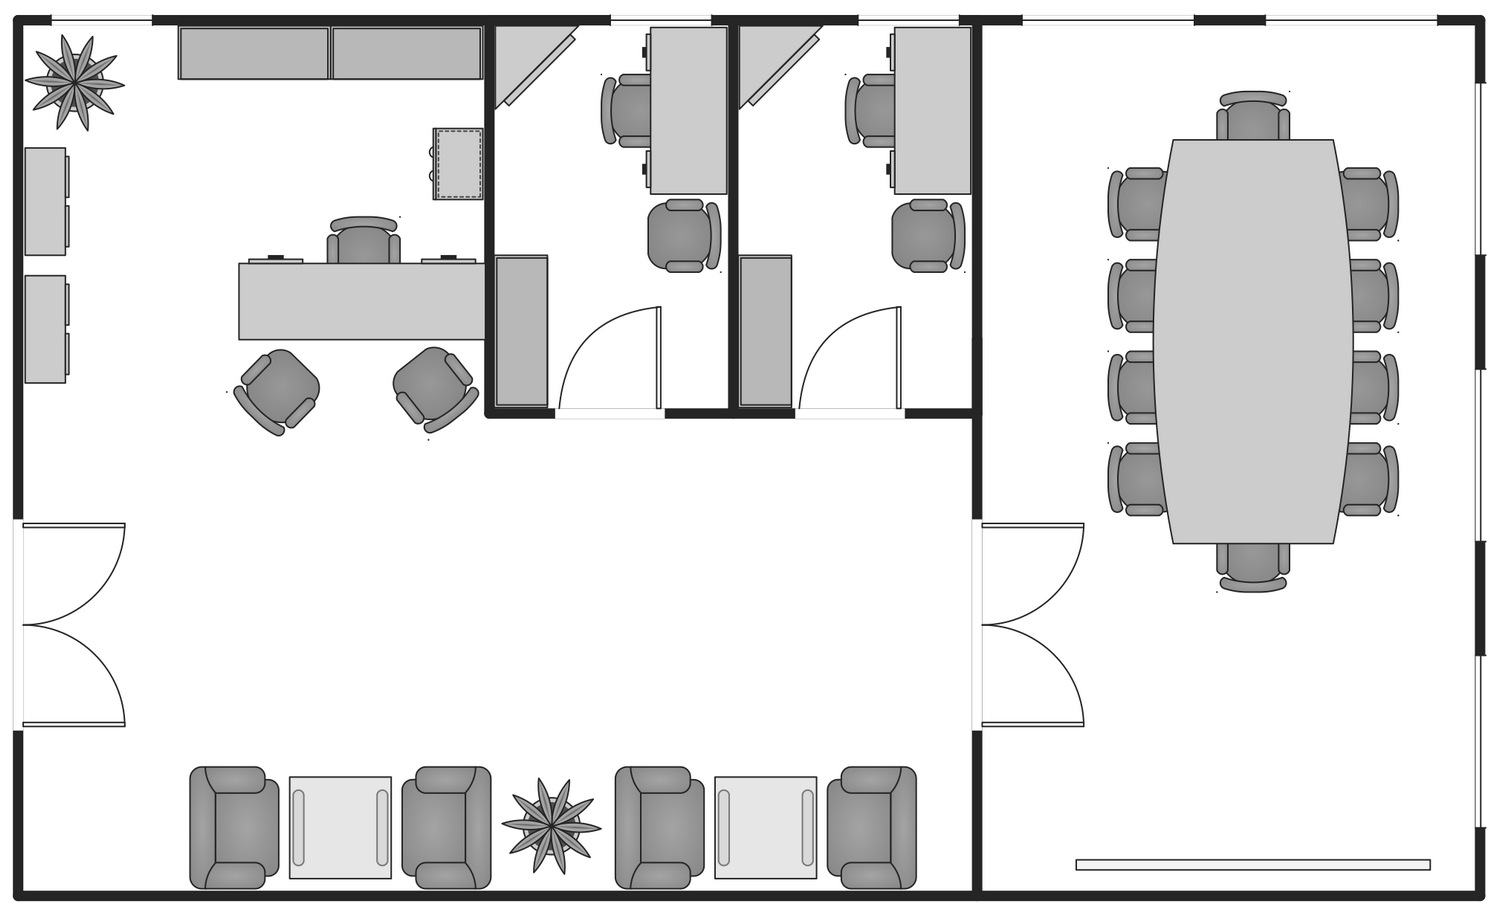 Basic Floor Plan - Small Office Floor Plan